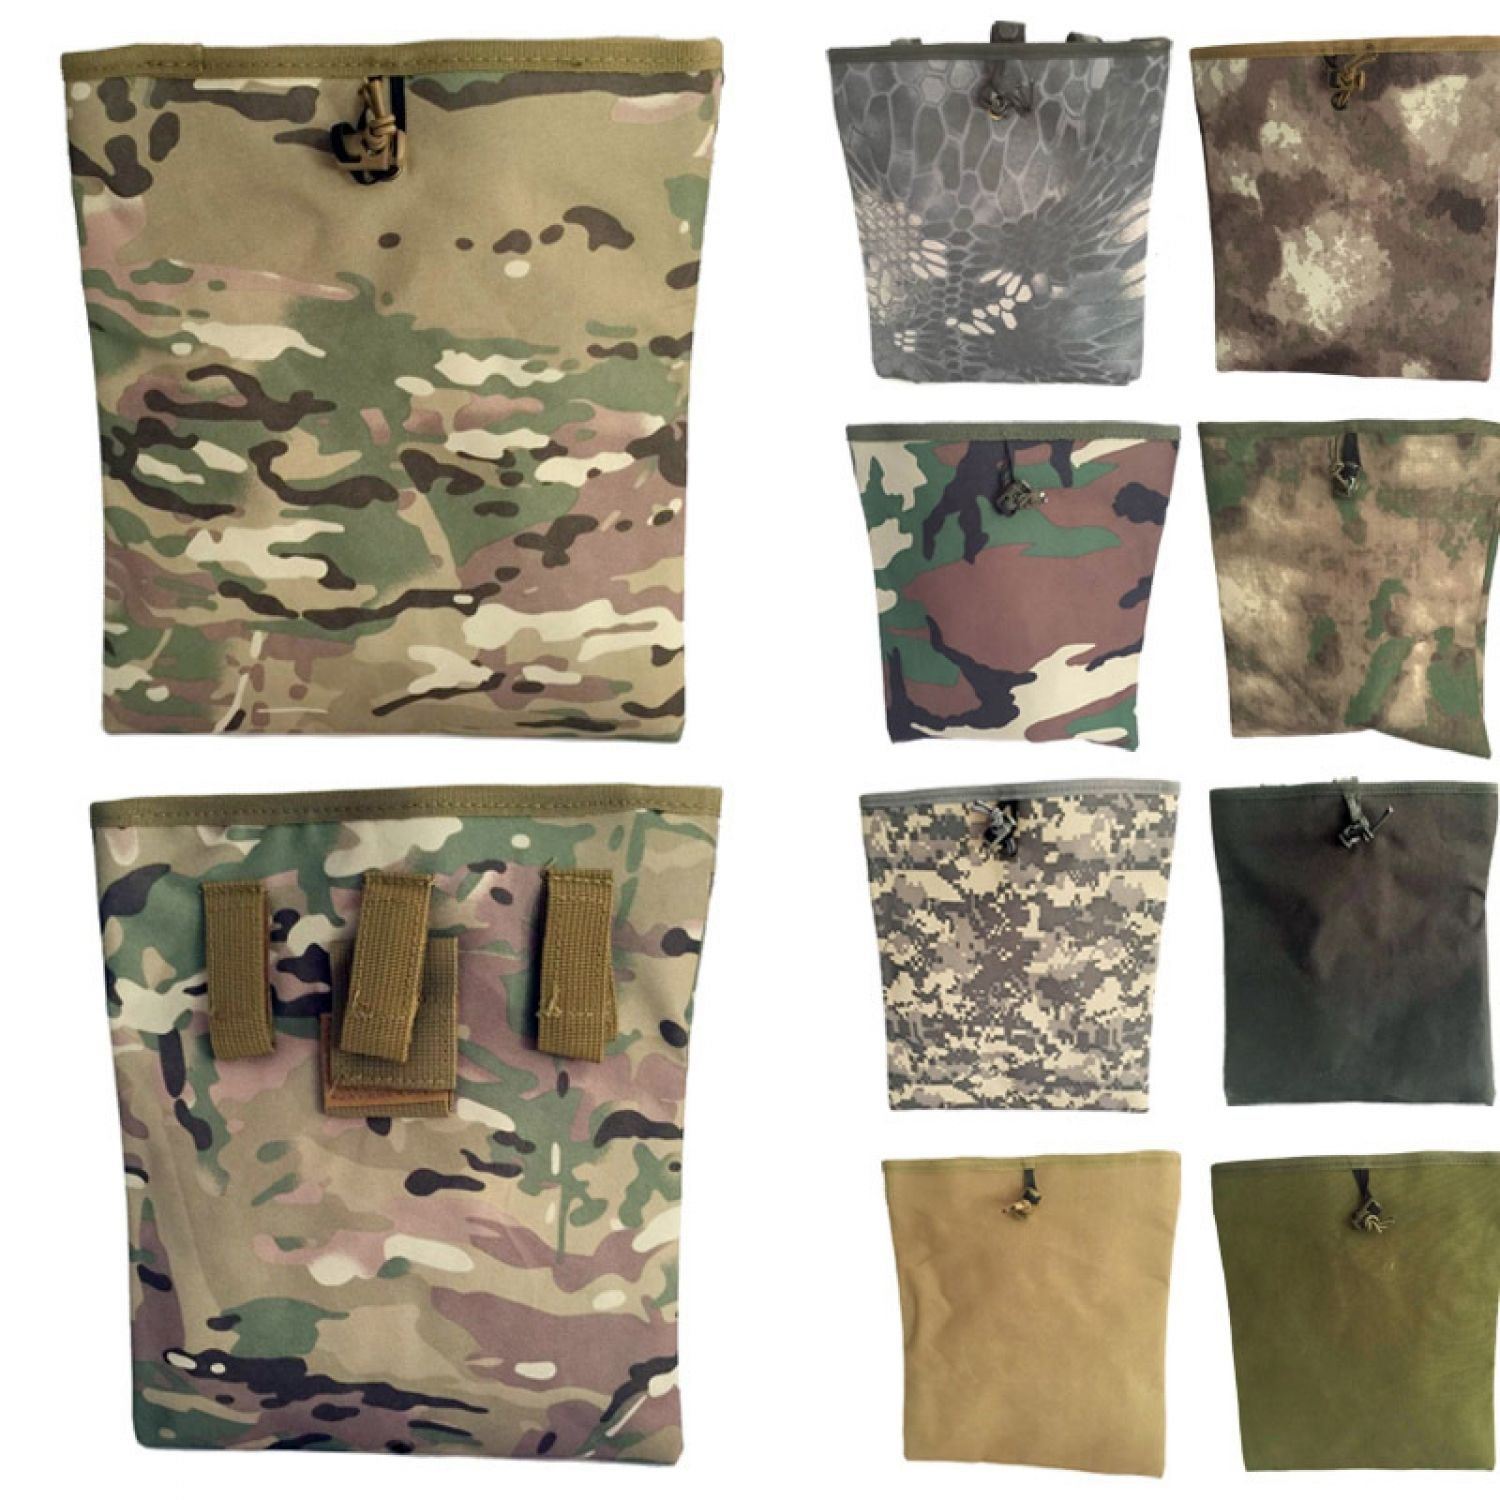 Pouch Dump Military Molle Tactical Foldable Mag Bag Roll Up Airsoft Paintball